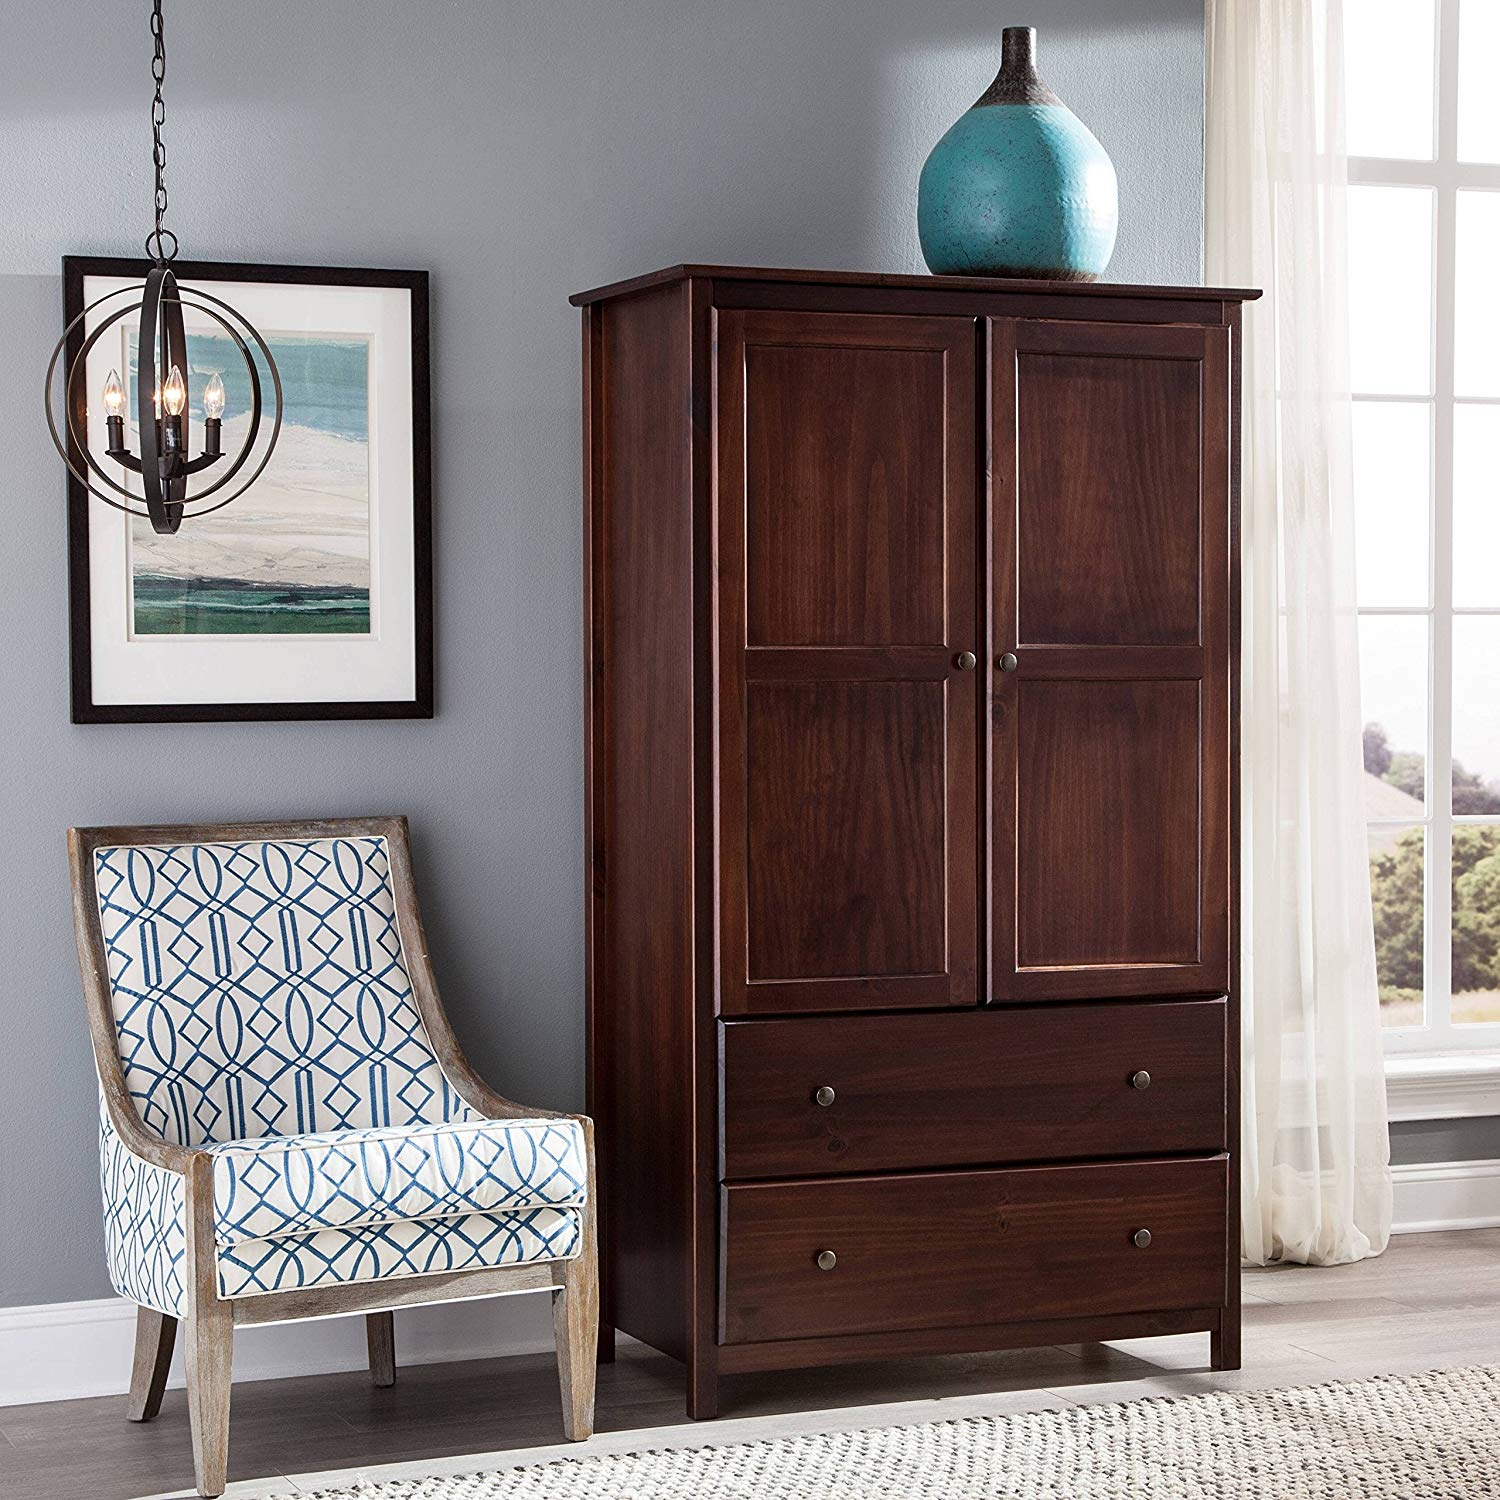 2-Door Solid Wood Armoire, 2 Drawers and 2 Large Doors, Made of Pine Wood, Metal Knobs, Luxurious ans Spacious, Sturdy Construction, Elegant and Stylish, Includes Hardware, Merlot Cherry Finish